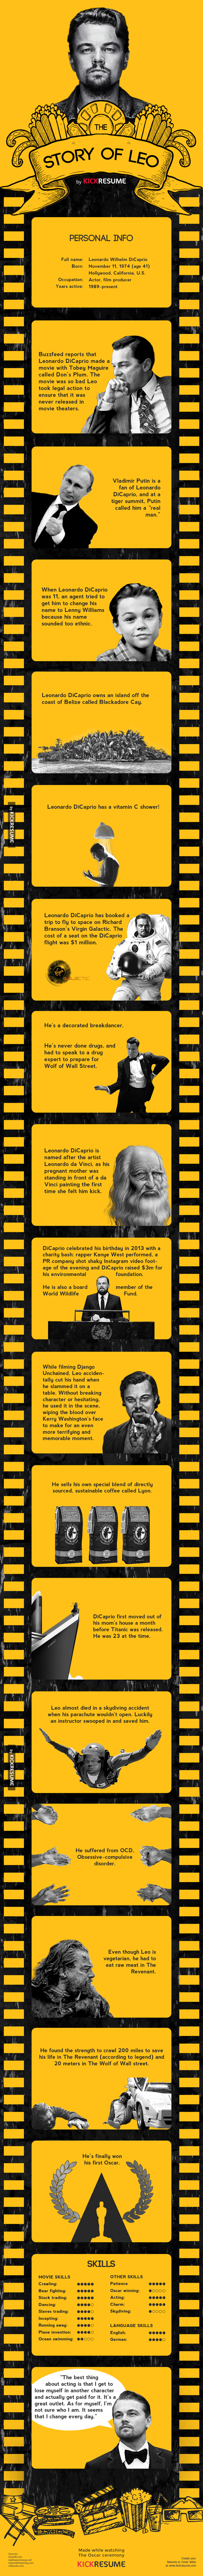 Resume of Leonardo DiCaprio: Surprising Facts You Didn\'t Know